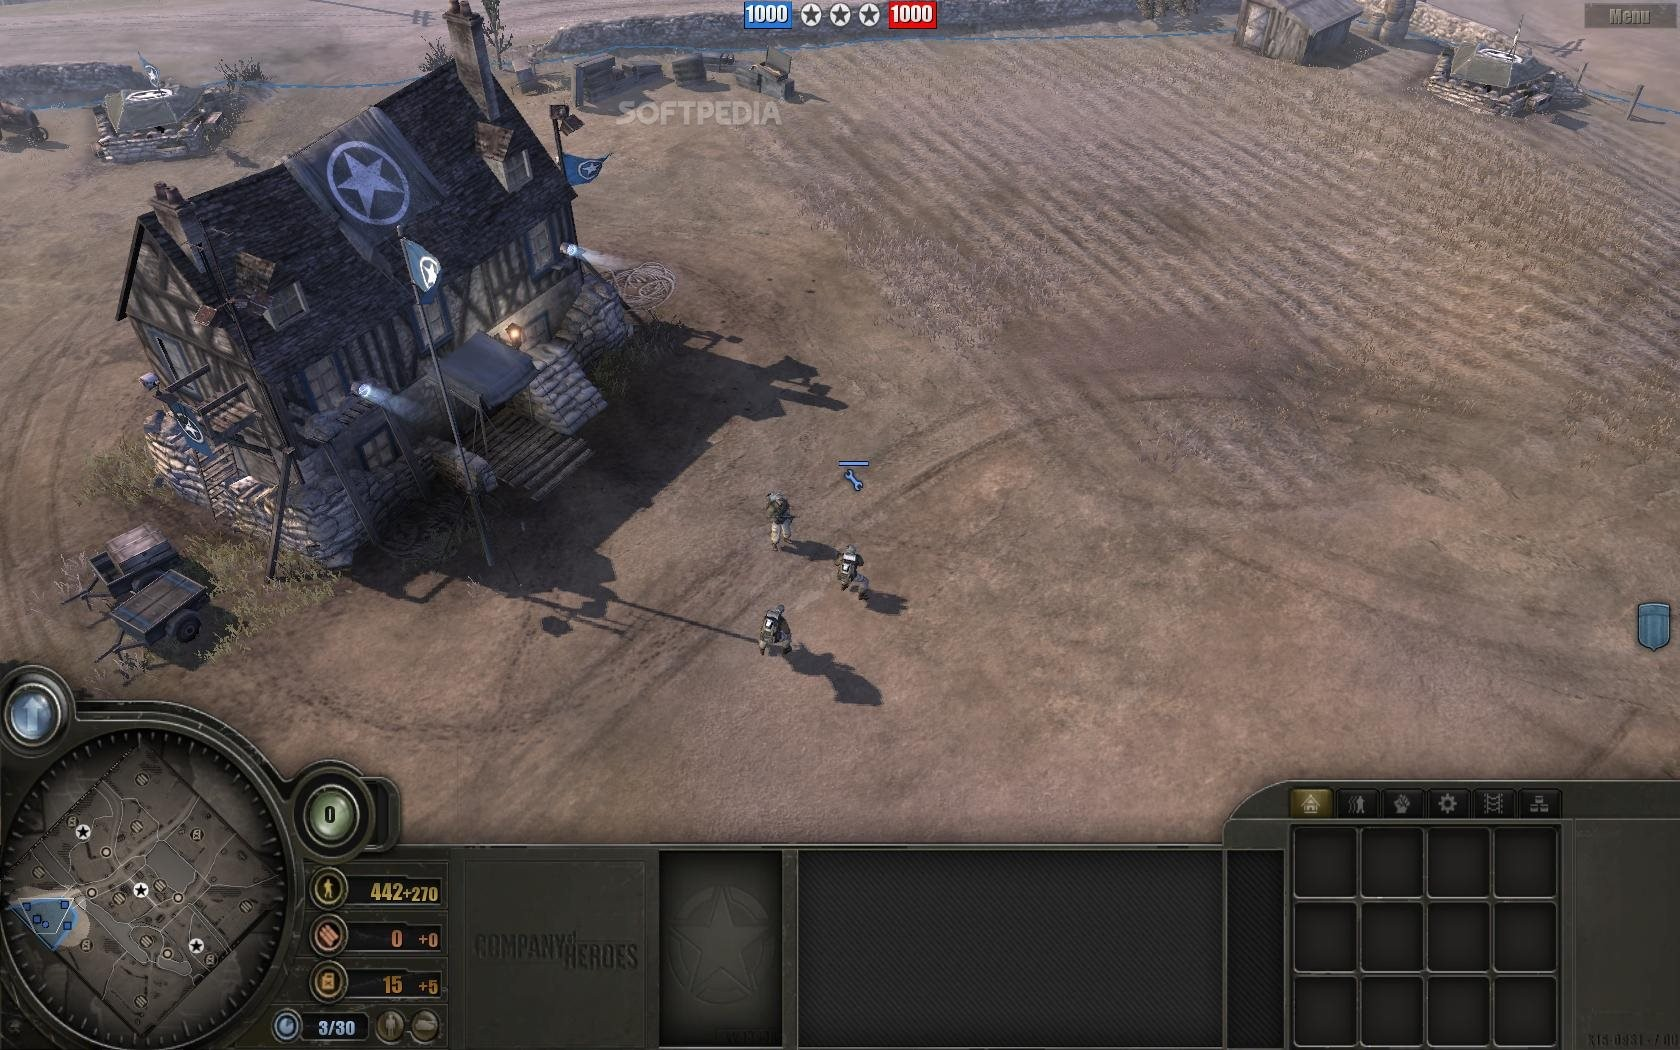 Company of Heroes - Free Maps and Mods! - GameMaps